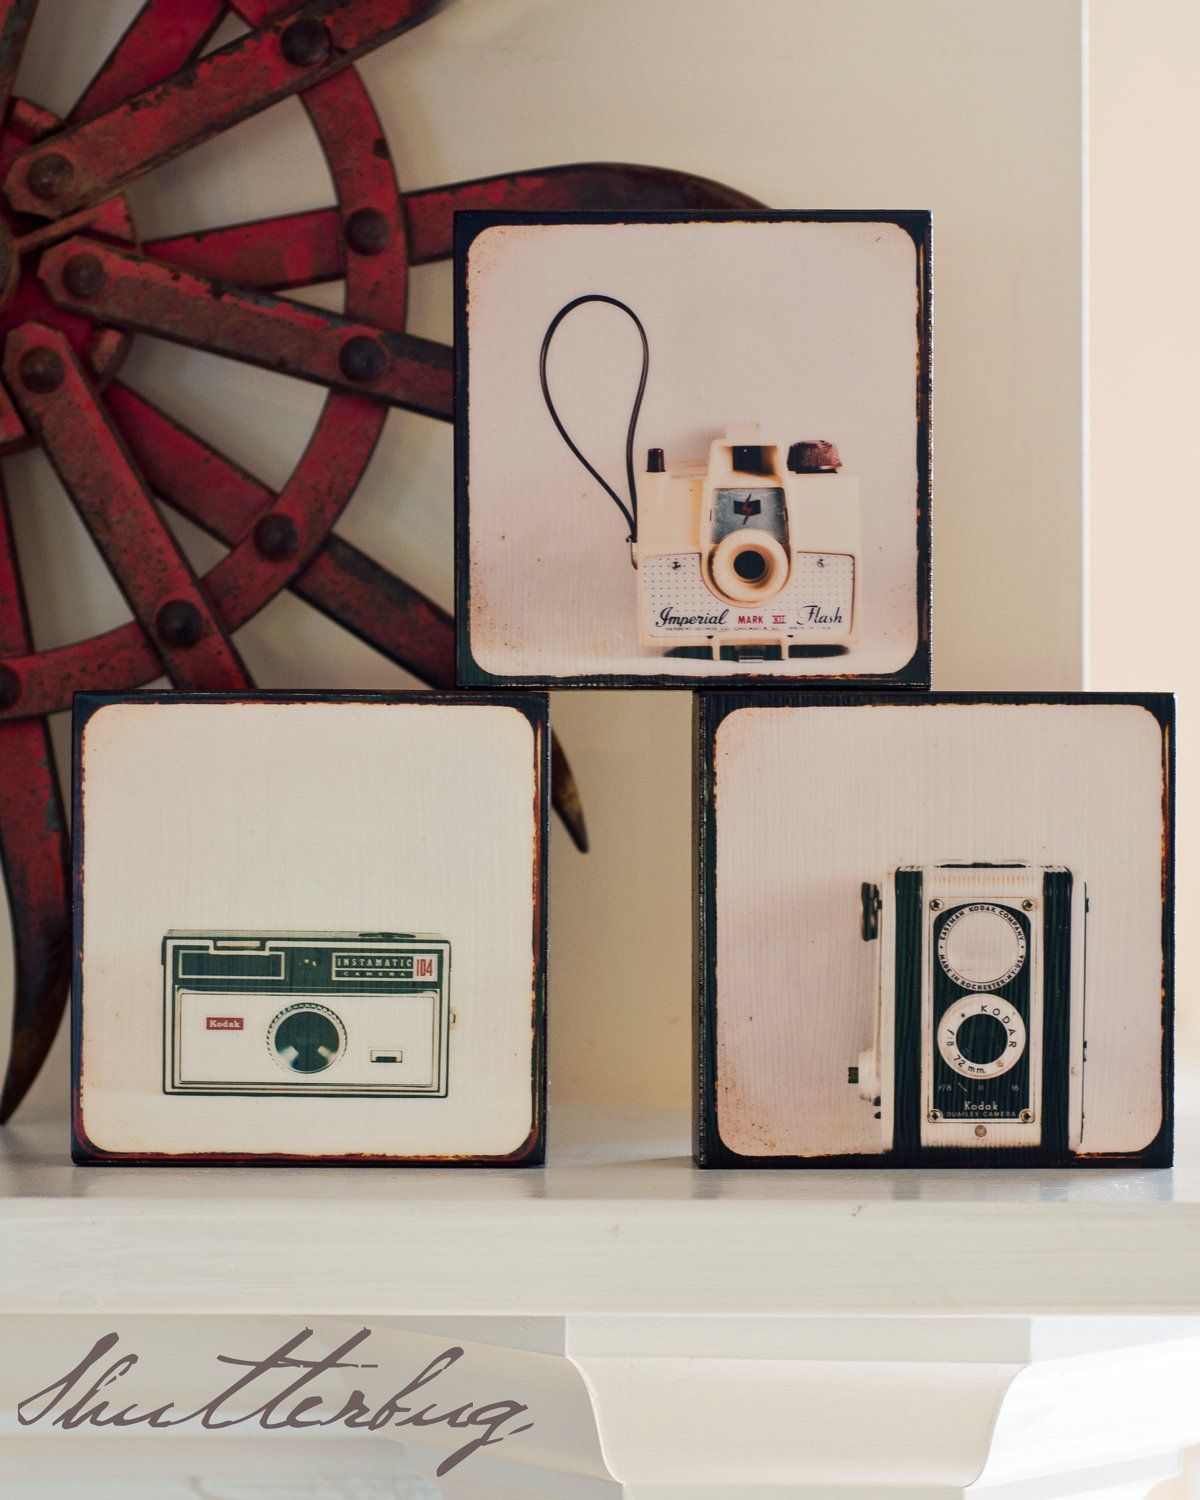 Wood Photo Blocks Vintage Cameras Home Decor Wall Art Whimsical Office For The Photographer Under 100 Shutterbug